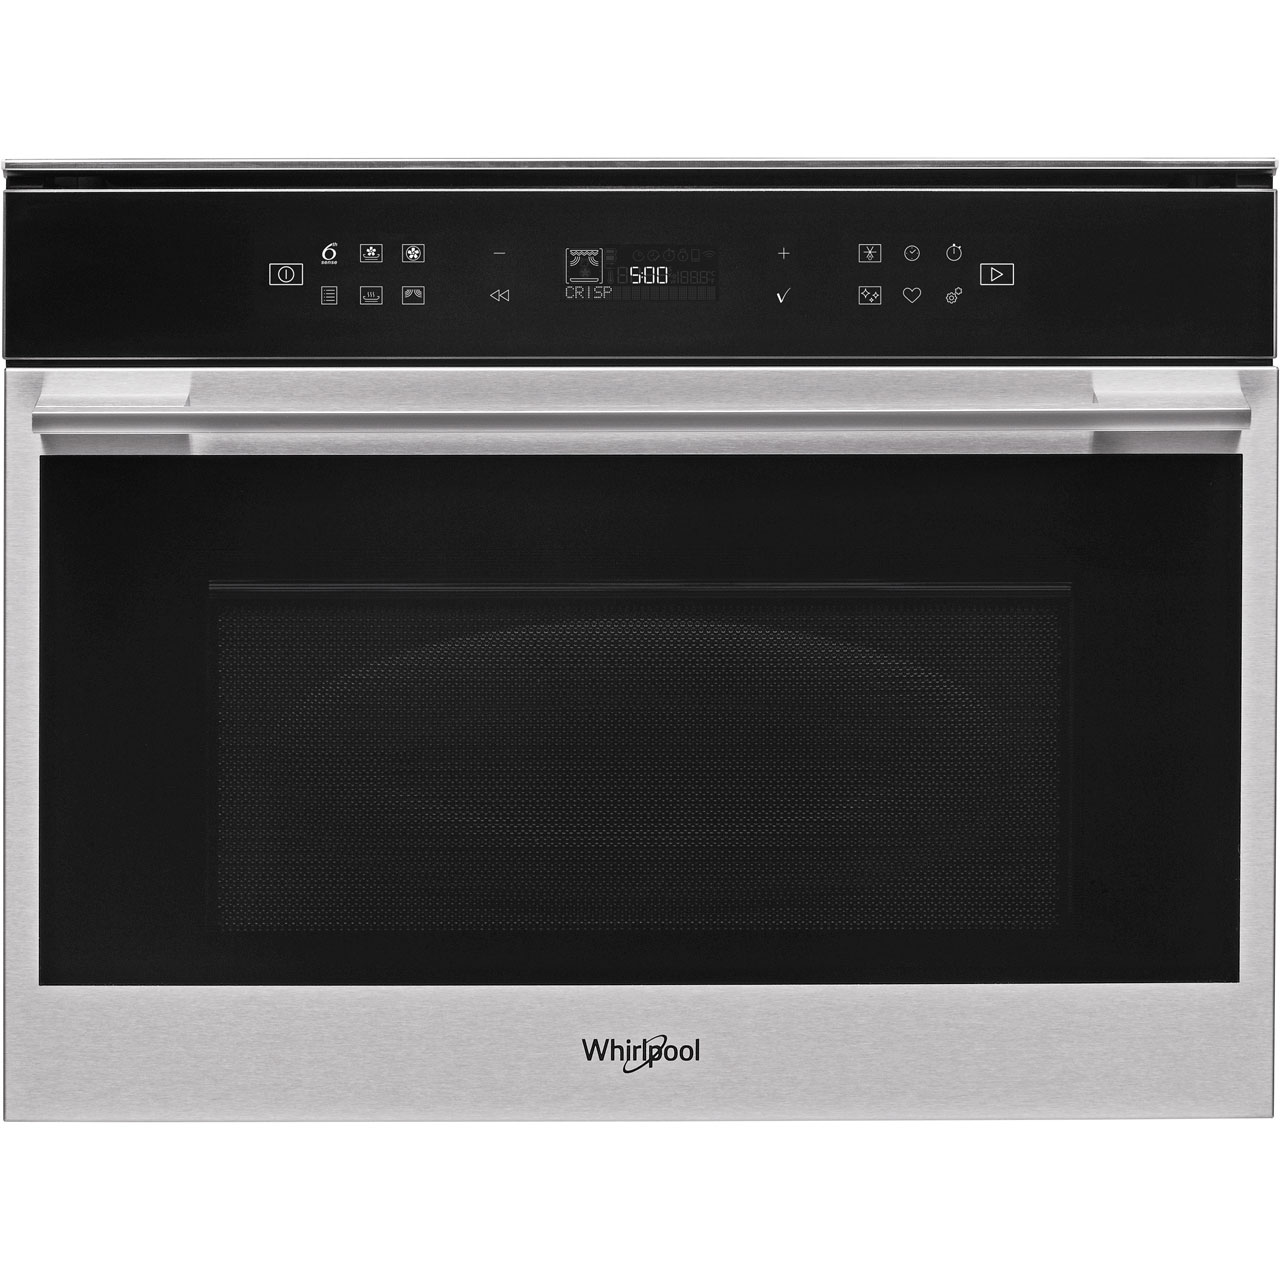 Whirlpool W Collection W7MW461UK Wifi Connected Built In Combination Microwave Oven review